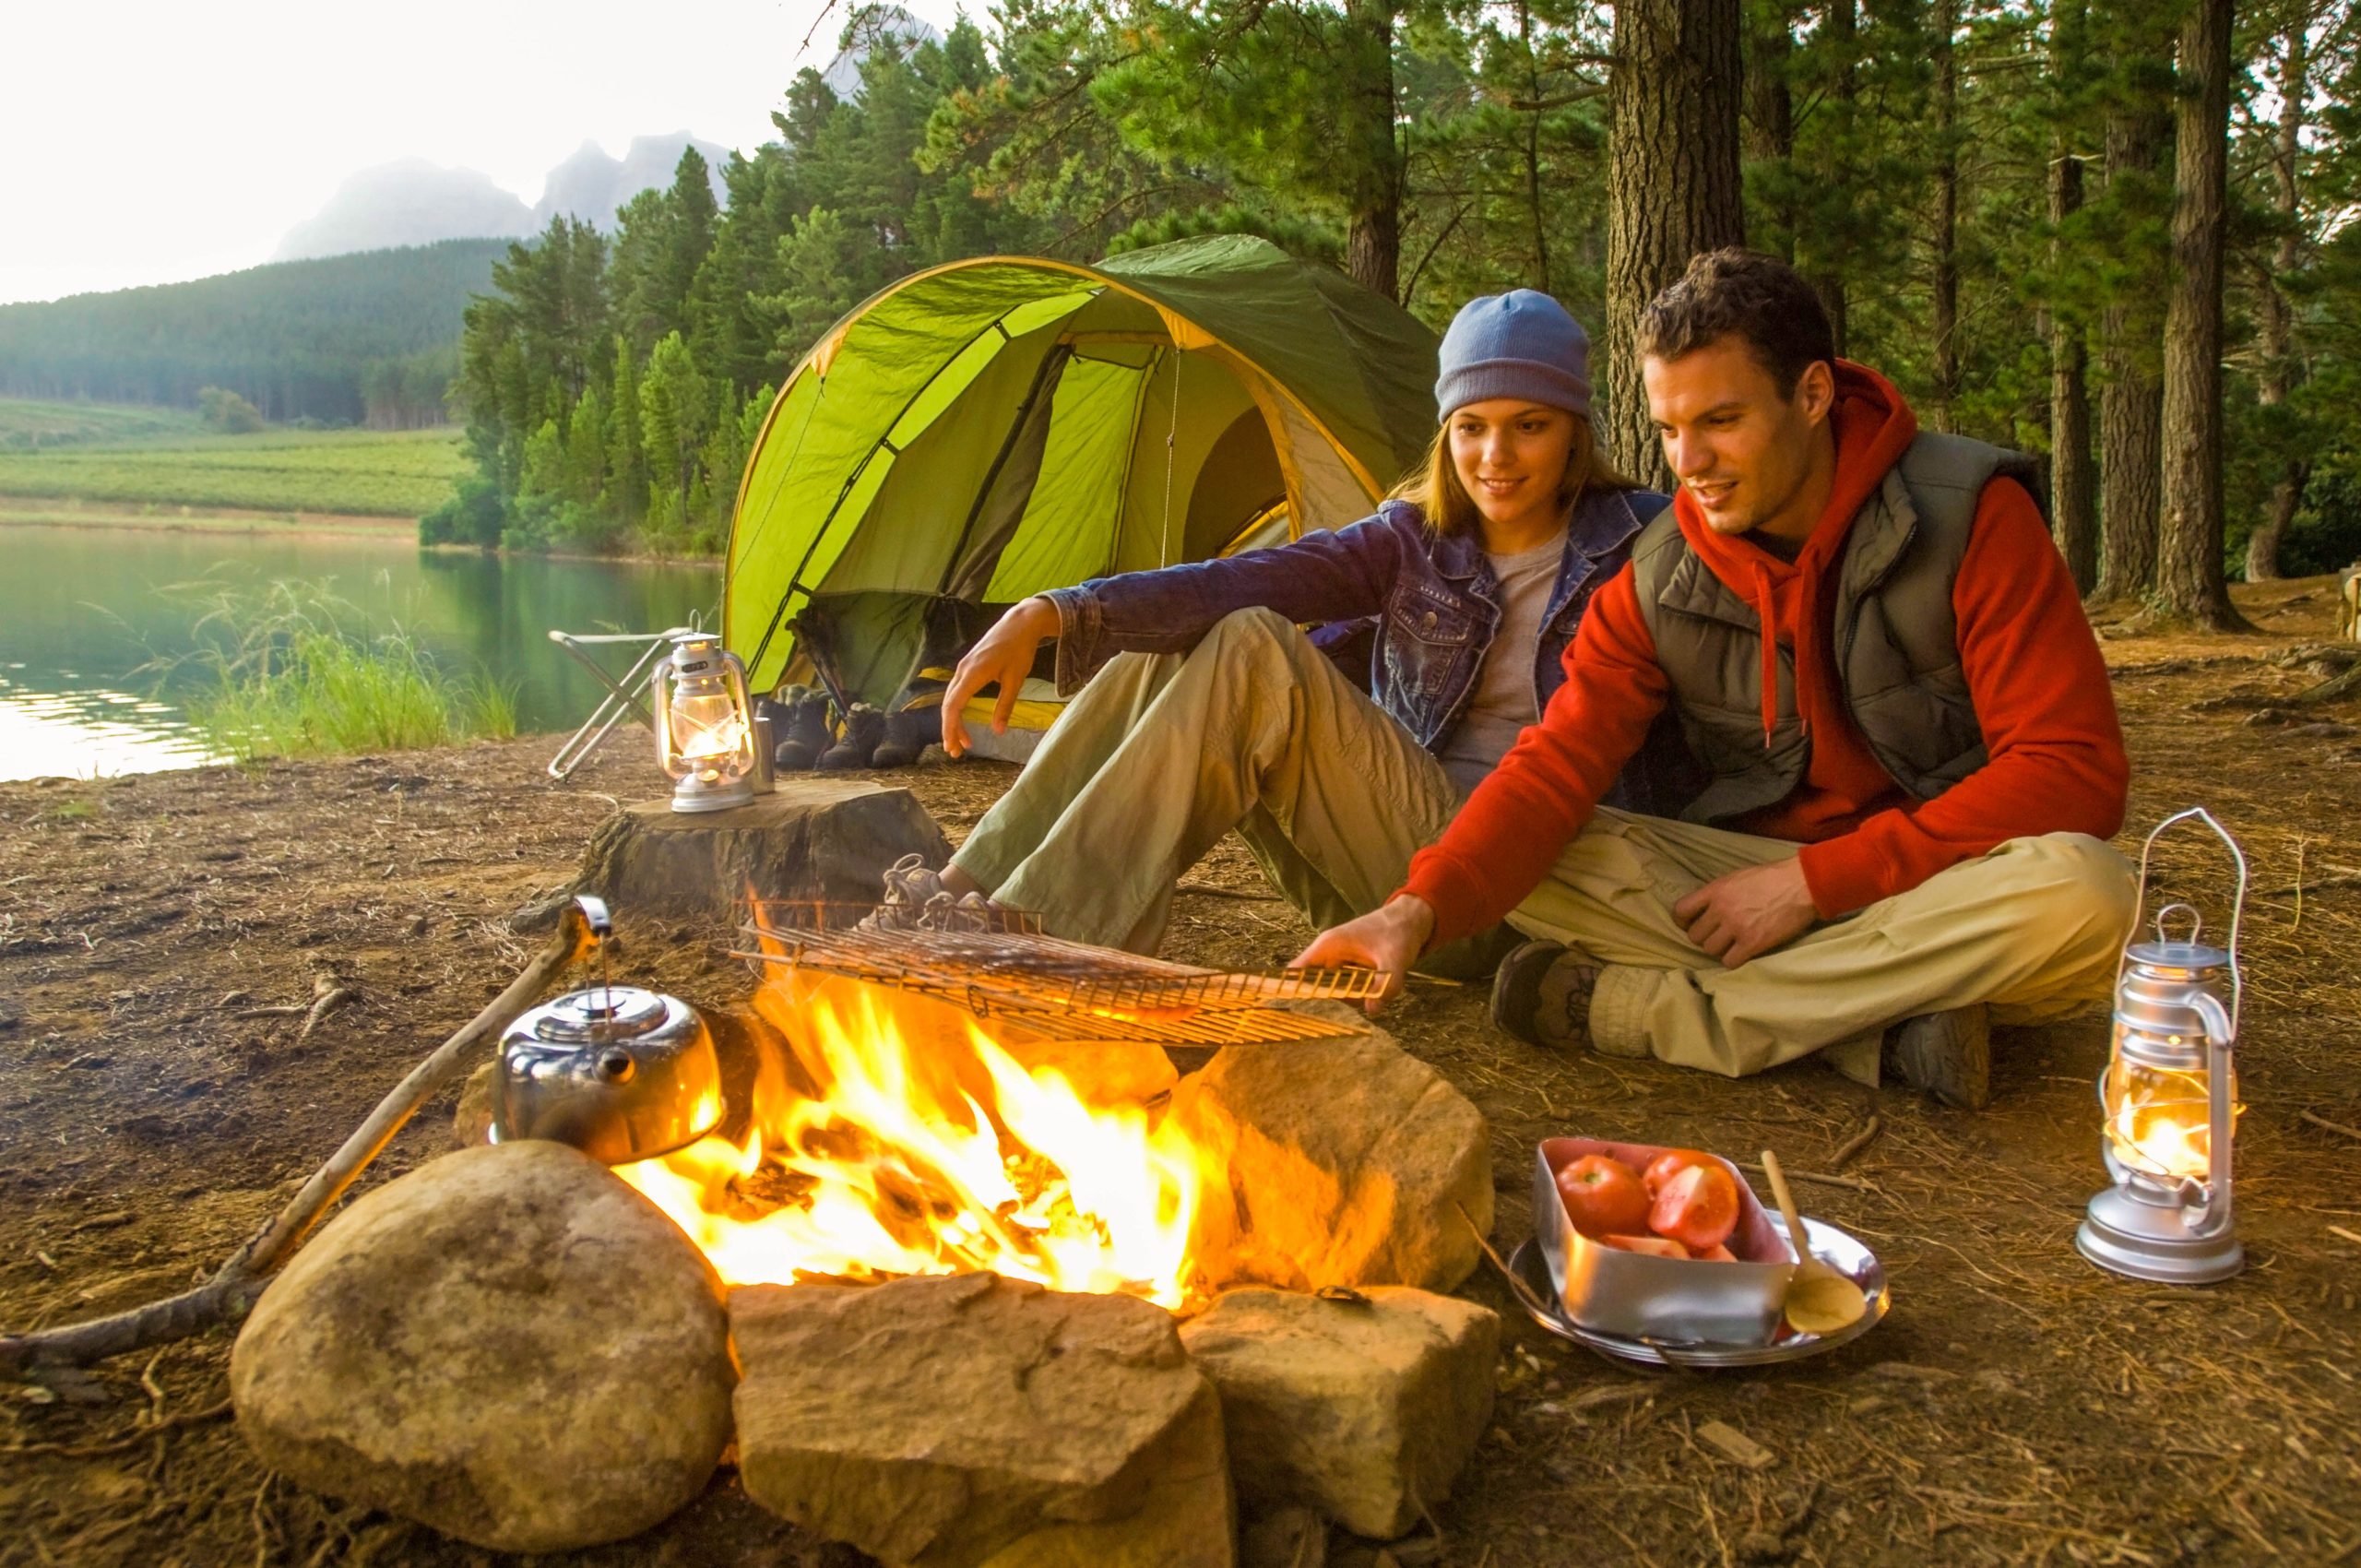 Get fired up about campfire cooking - Camping season revs up when the temperature warms. In a recent survey by Kampgrounds of America, Inc., the main reasons people say they go camping are to reconnect with nature, spend time with family and friends and reduce stress and relax.